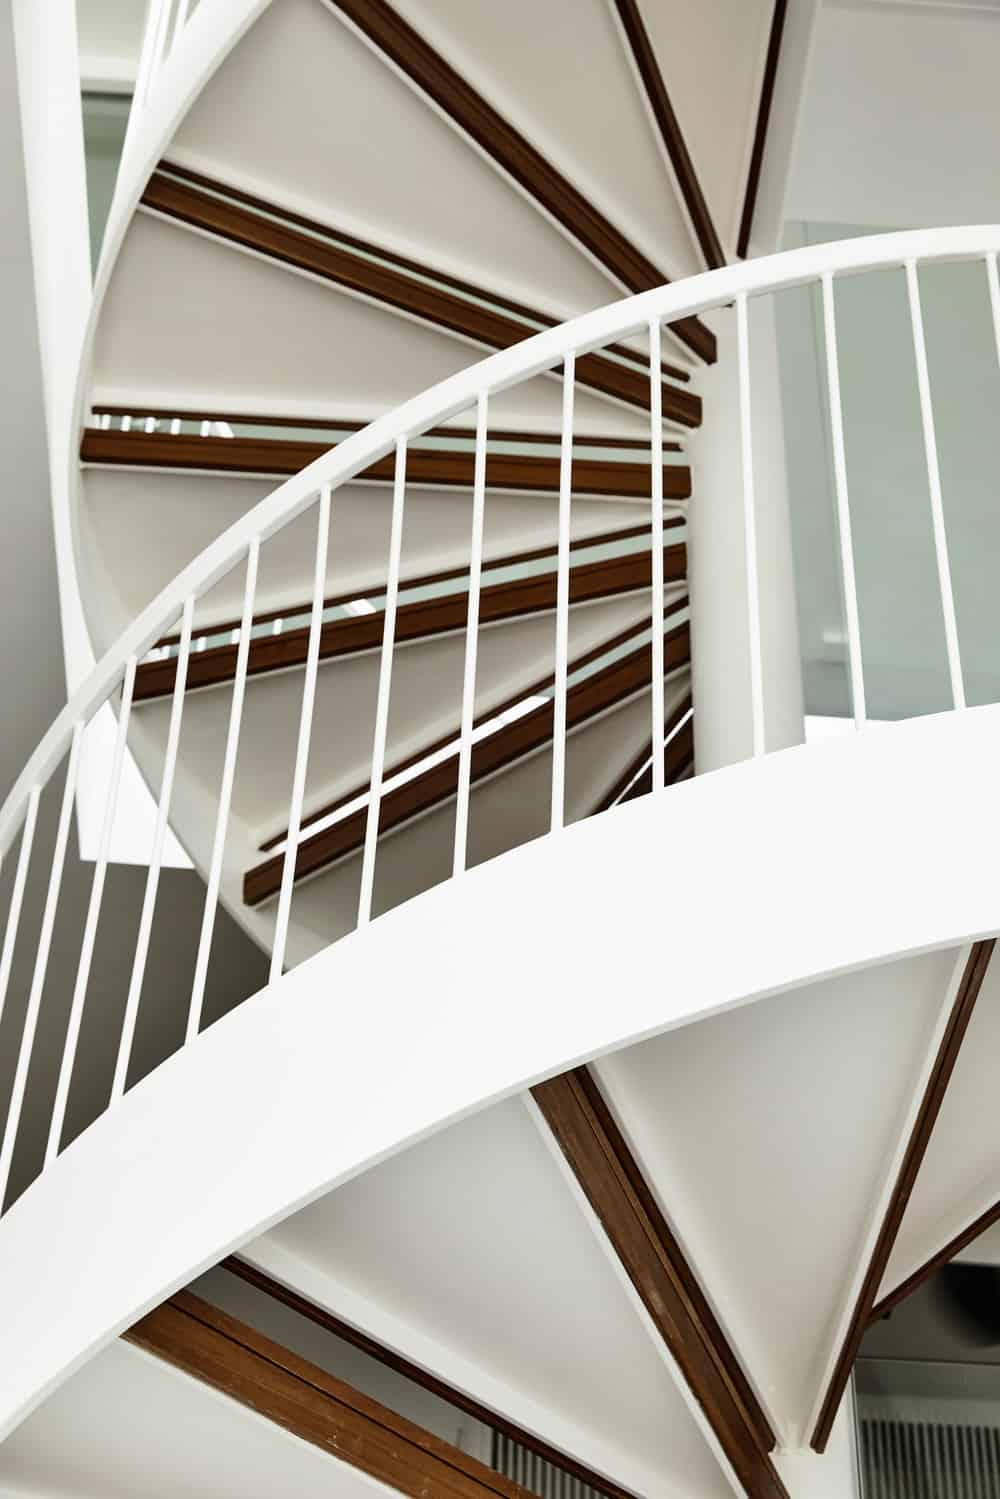 This is the spiral staircase going from the second level to the third level with thin railings on the side.